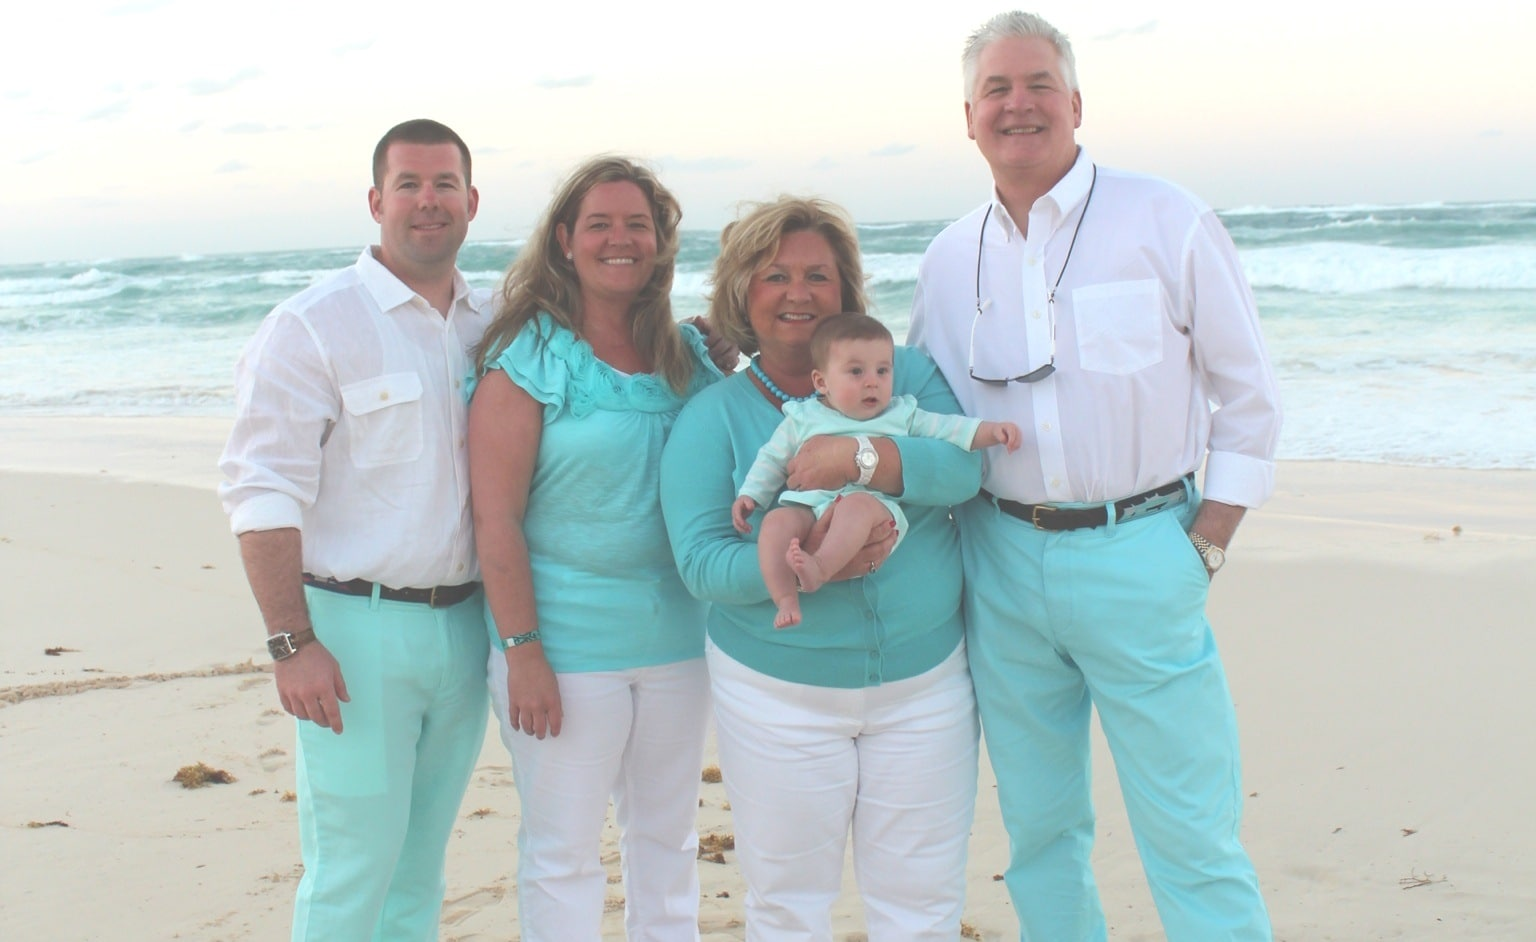 cropped coastal family 2.jpg